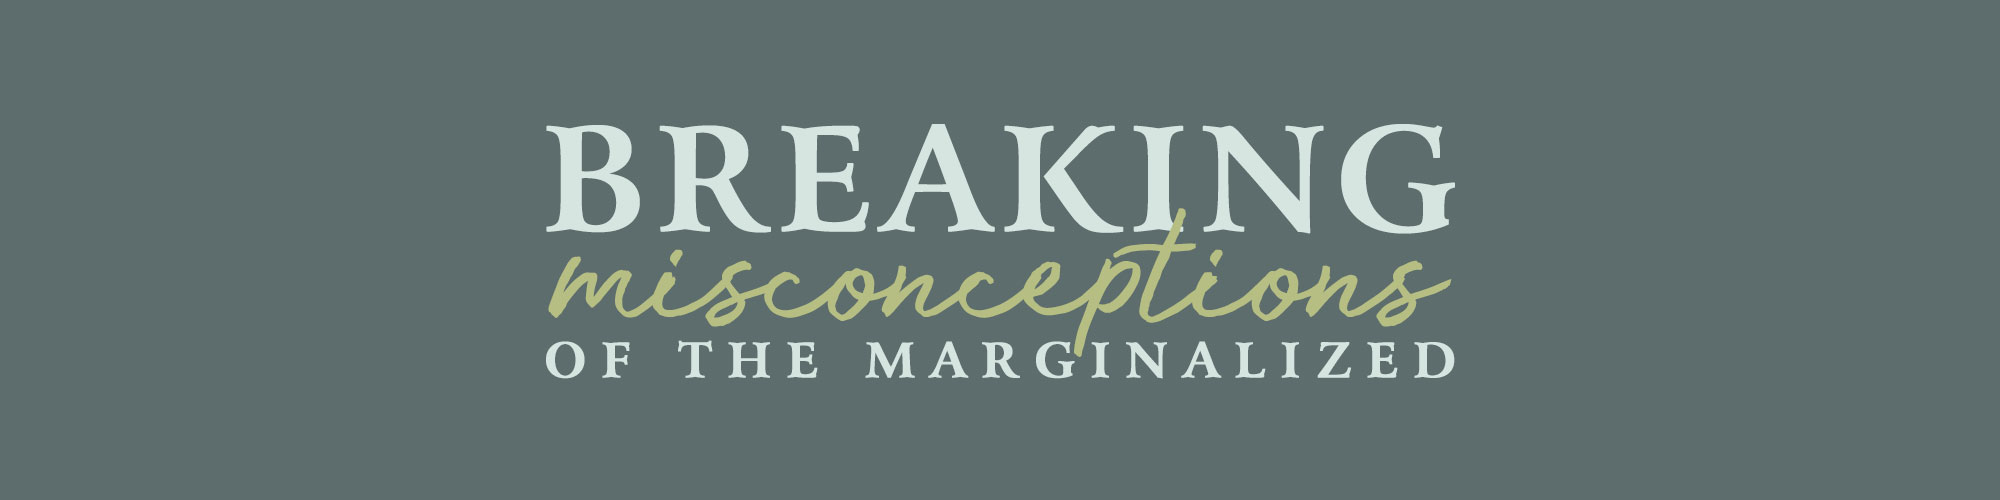 Breaking Misconceptions of the Marginalized